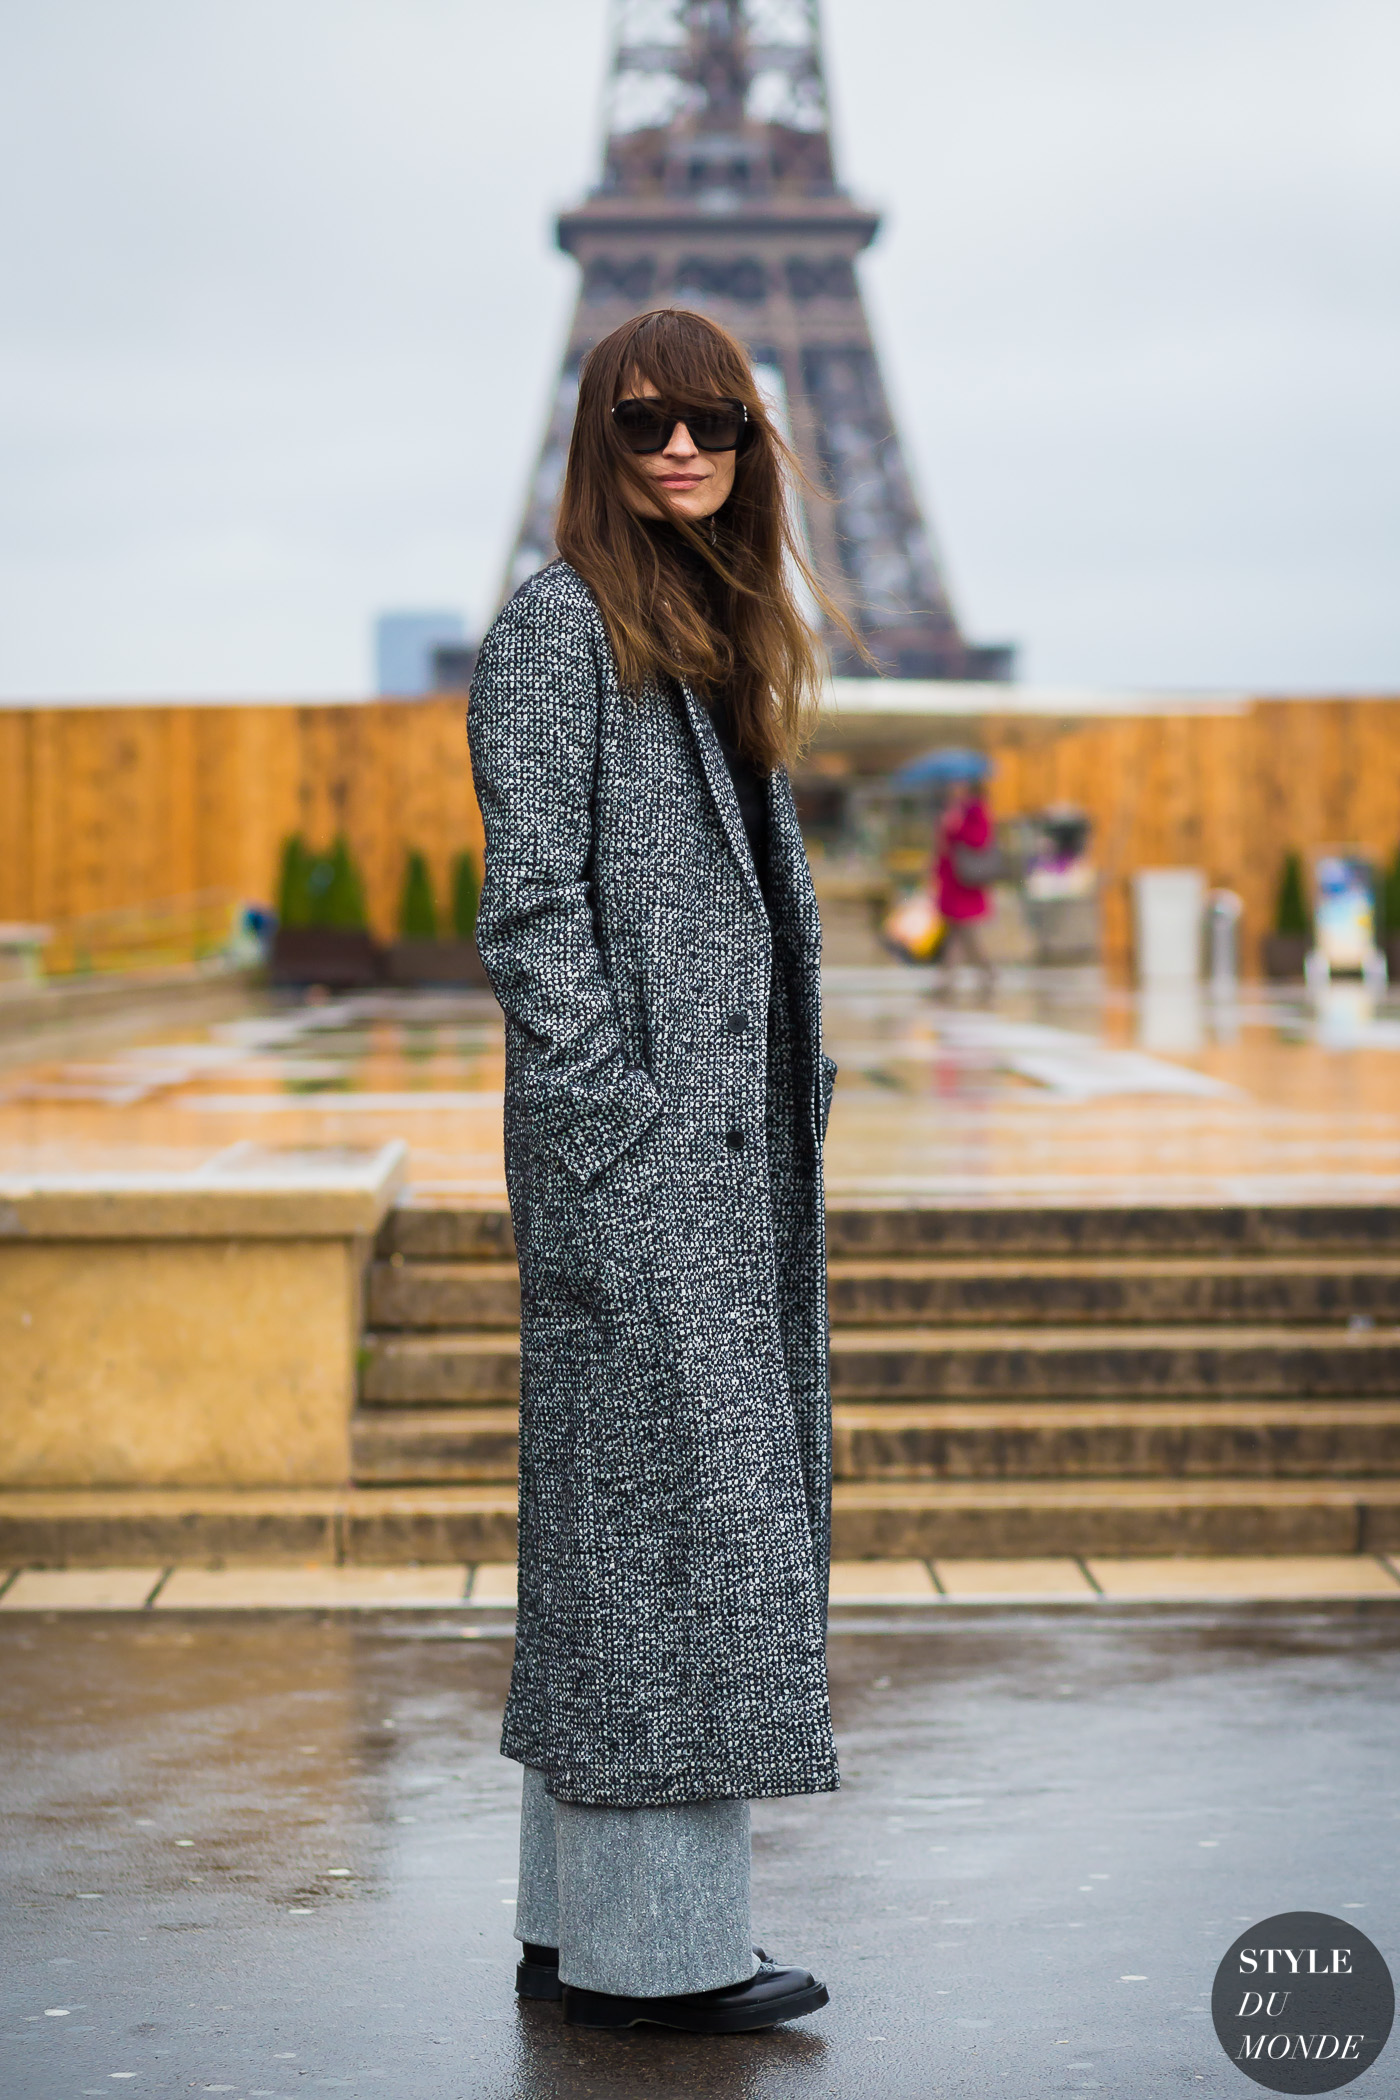 caroline-de-maigret-by-styledumonde-street-style-fashion-photography